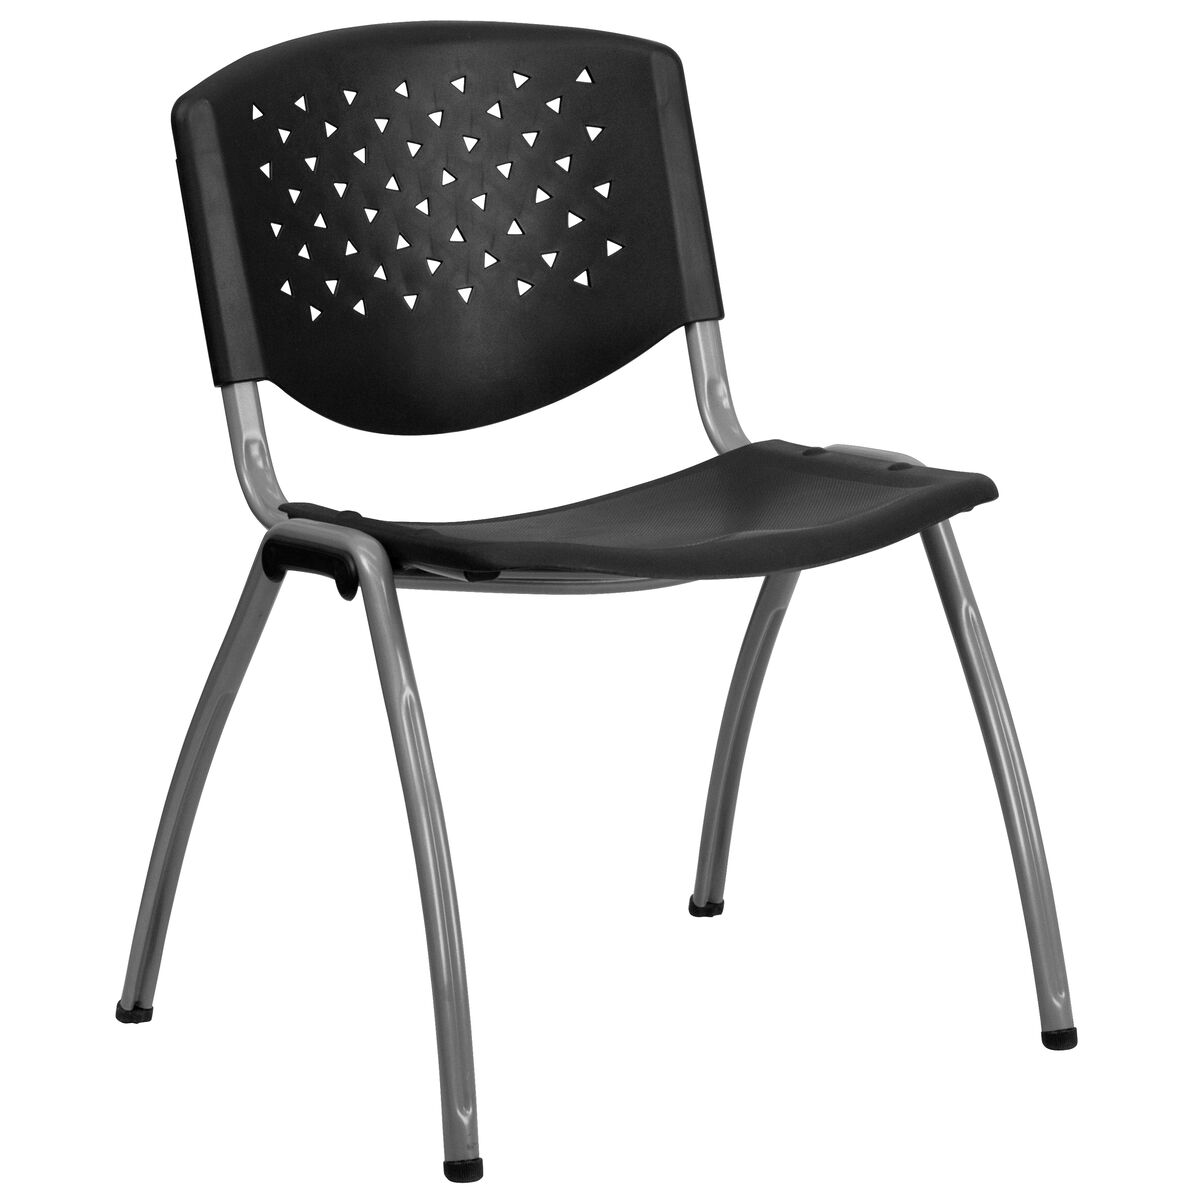 For Less Furniture: Black Plastic Stack Chair RUT-F01A-BK-GG